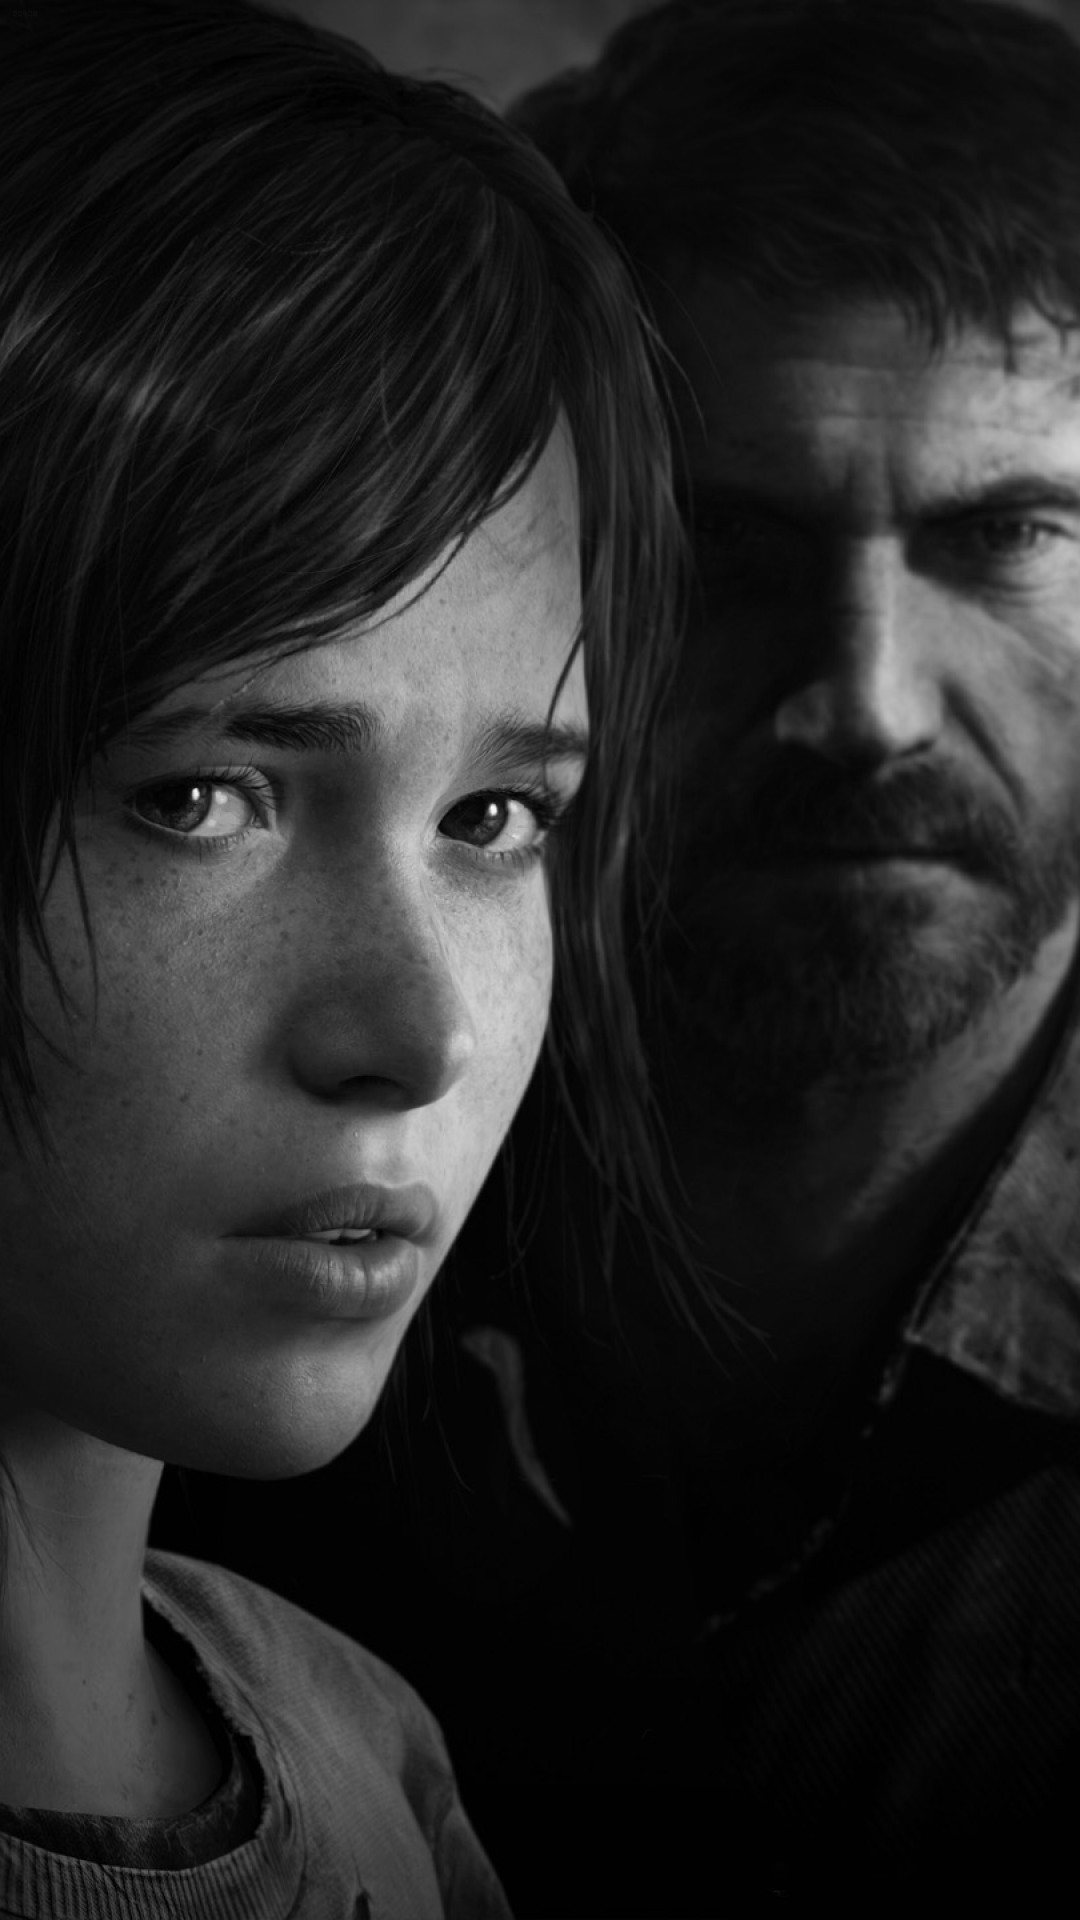 The Last Of Us iphone wallpaper high quality